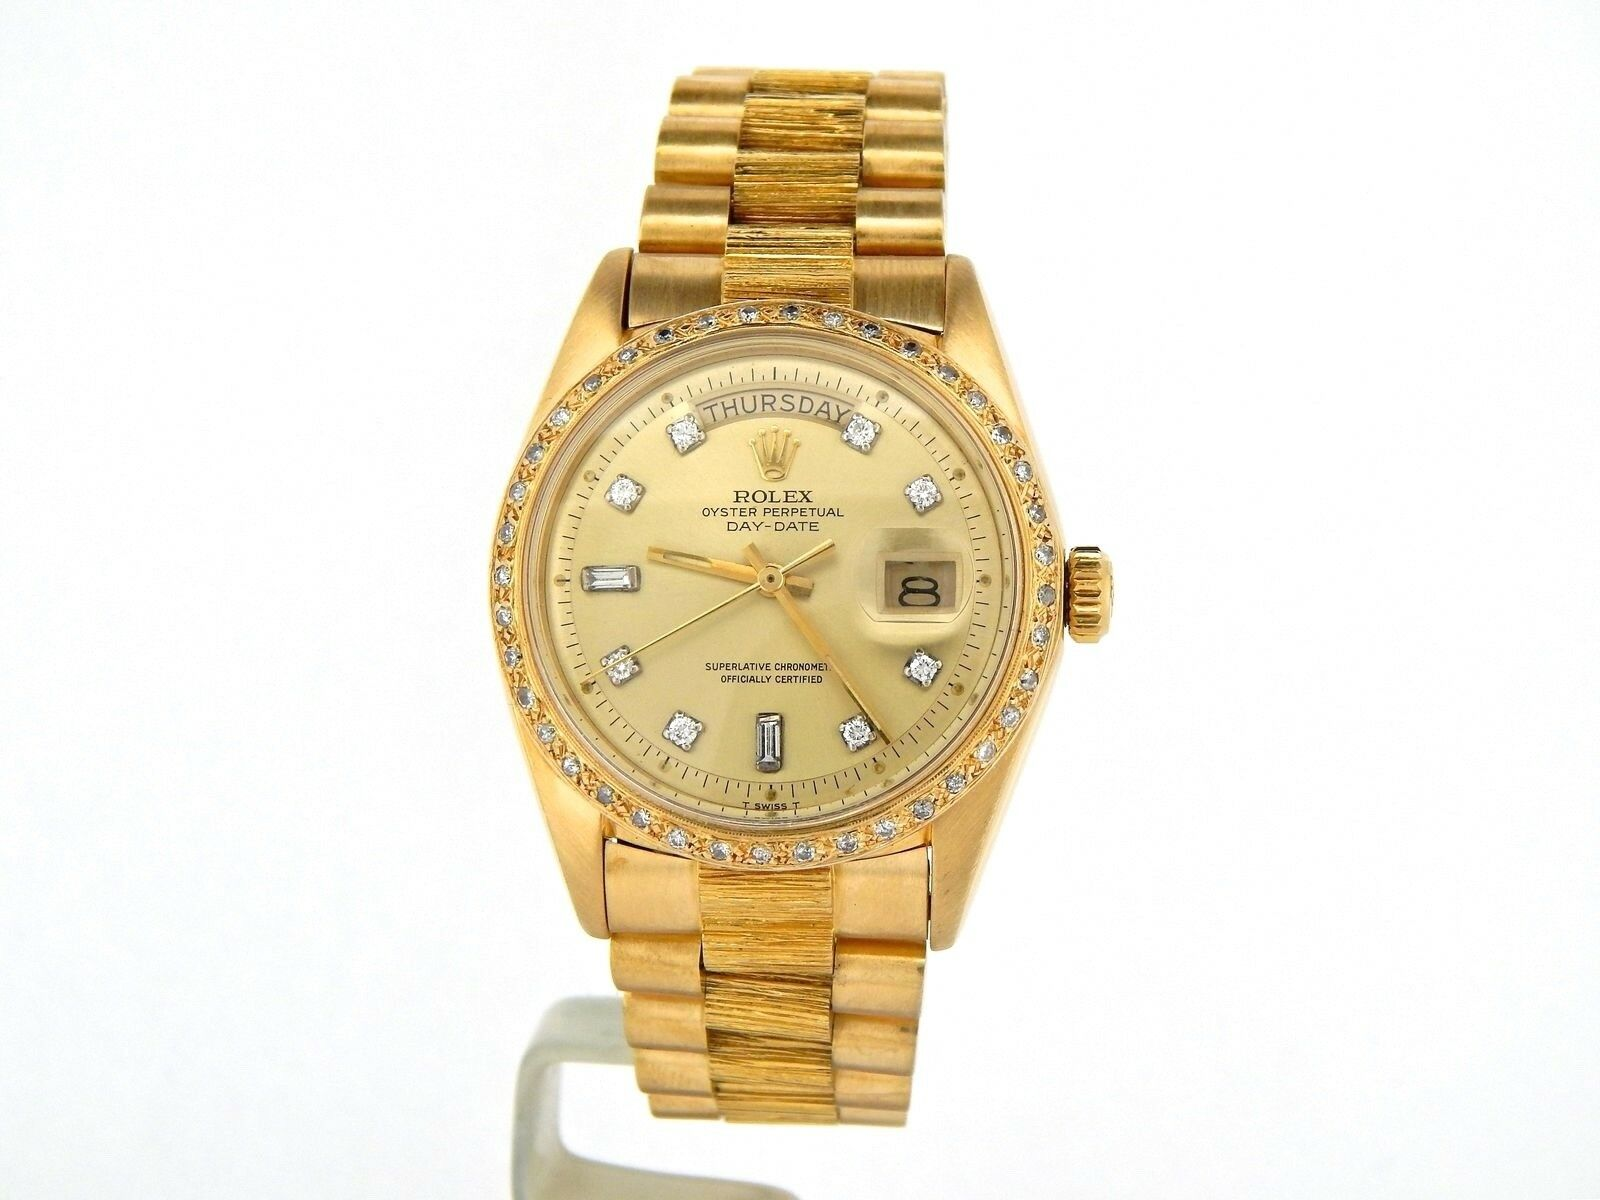 $9809.98 - Mens Rolex Day-Date President 18k Yellow Gold Watch Bark Diamond Dial Bezel 1803